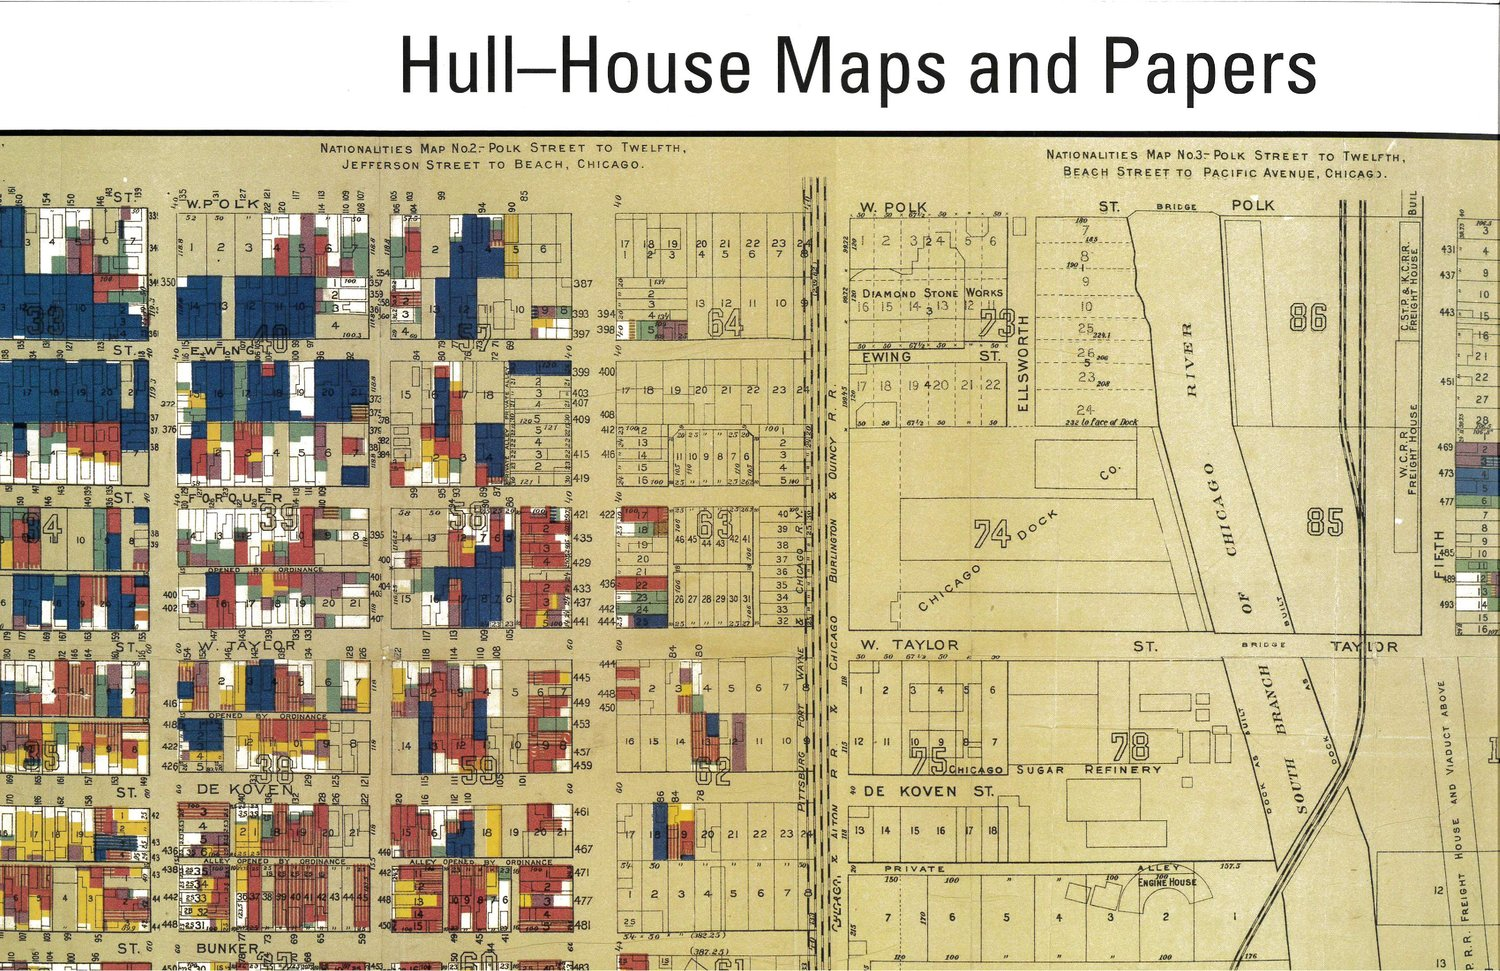 Hull-House Maps and Papers Nationality Map — Jane Addams Hull-House on uic campus tours, cincinnati east campus map, uic student center east, illinois state university campus map, utb campus map, u of chicago campus map, duke university east campus map, uiuc campus map, valencia east campus map, mjc east campus map, bsb uic campus map, western illinois campus map, uc east campus map, mit east campus map, university of illinois at chicago campus map, icc east campus map, ncsu east campus map, uci main campus map,